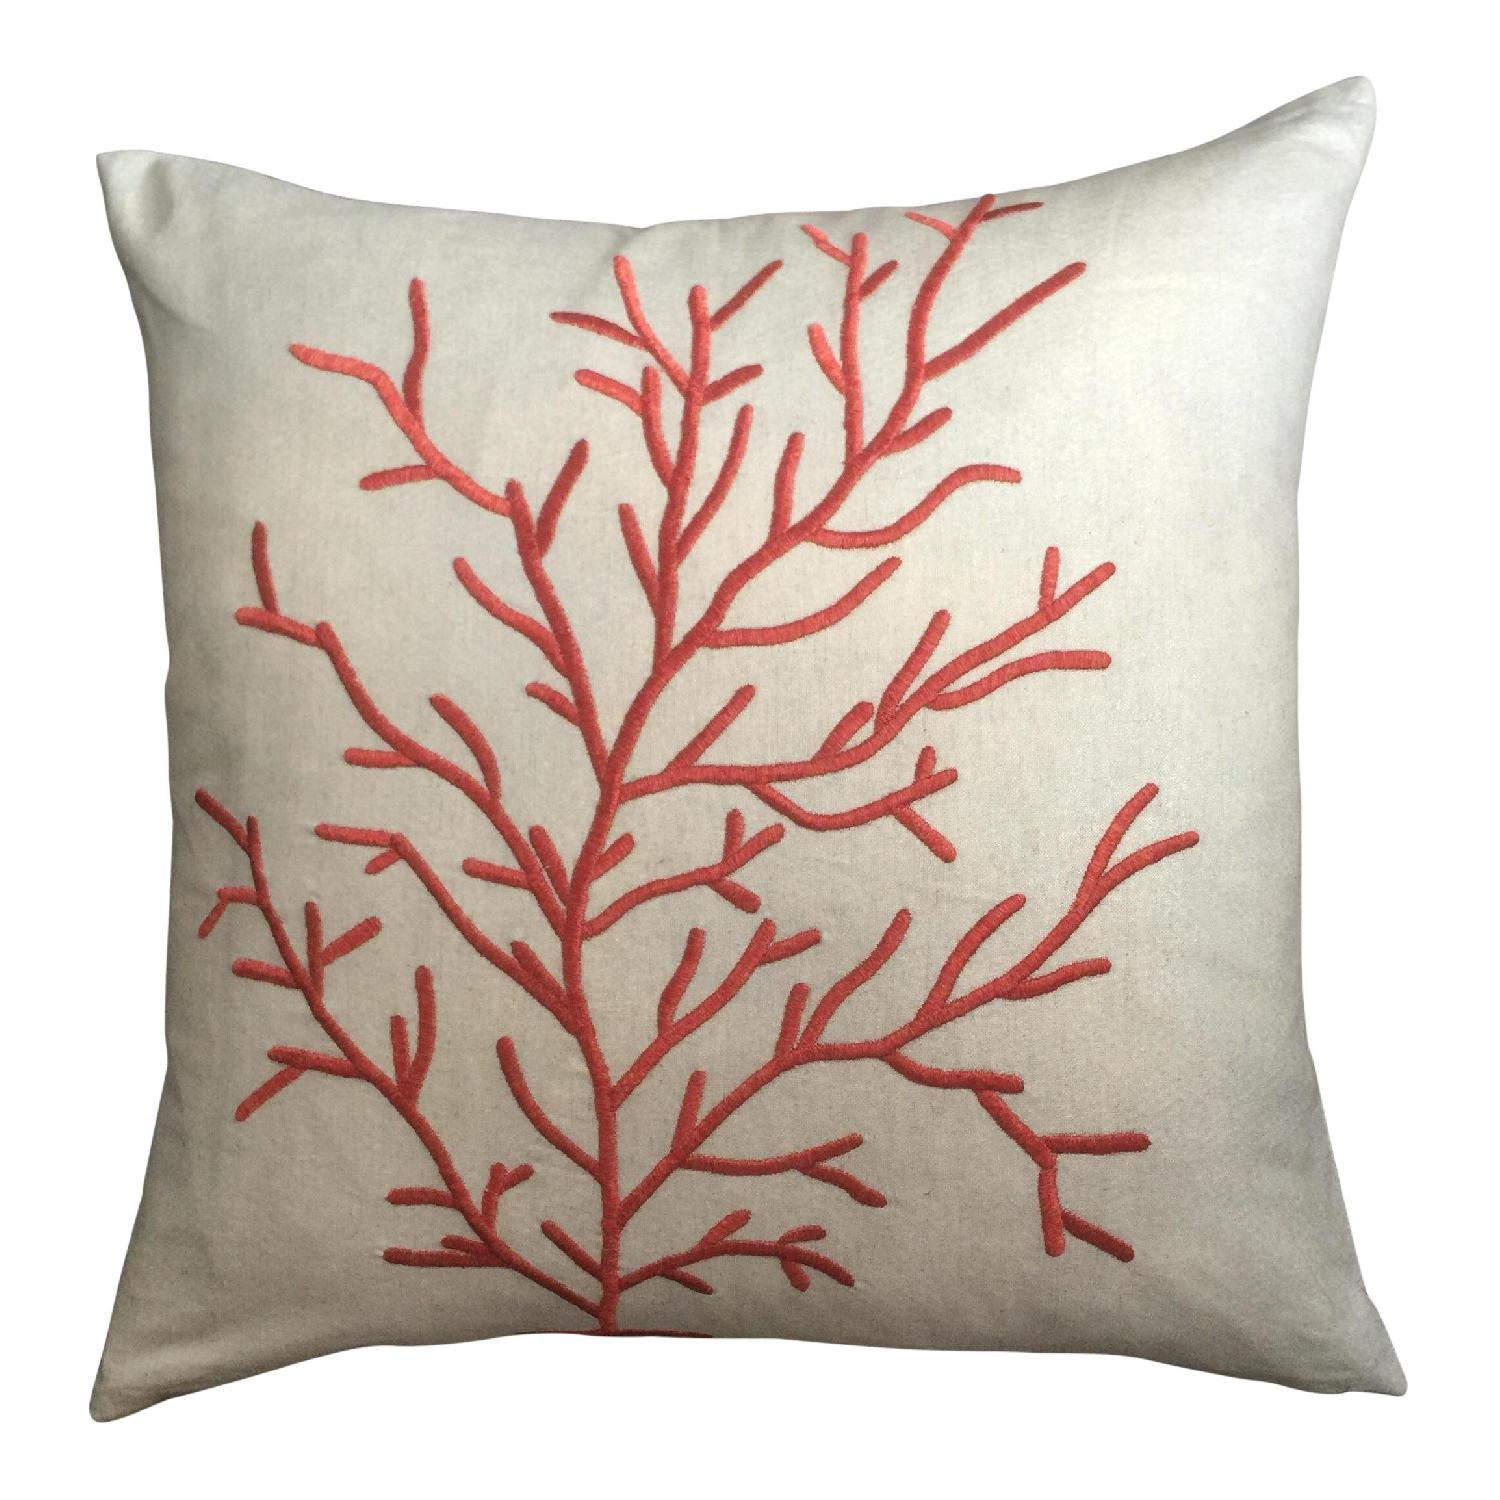 Coastal Coral Embroidered Pillow - image-0